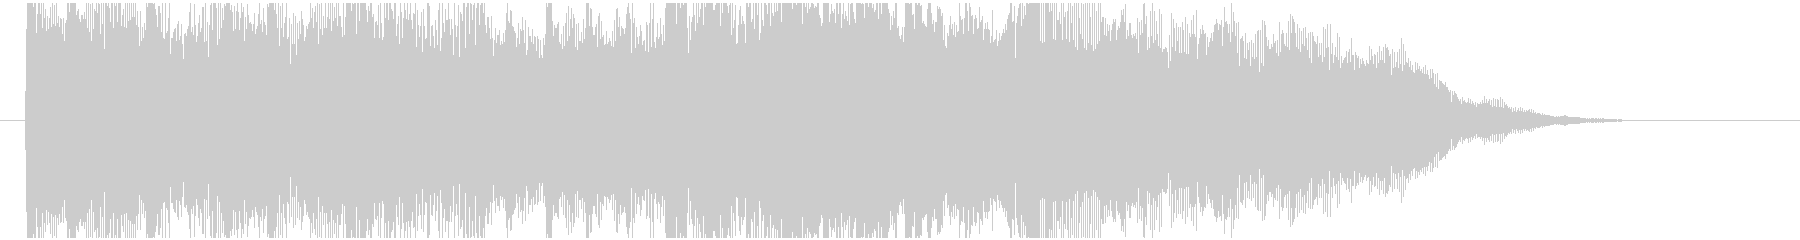 Game: Music staying at [Inn]'s unreproduced waveform